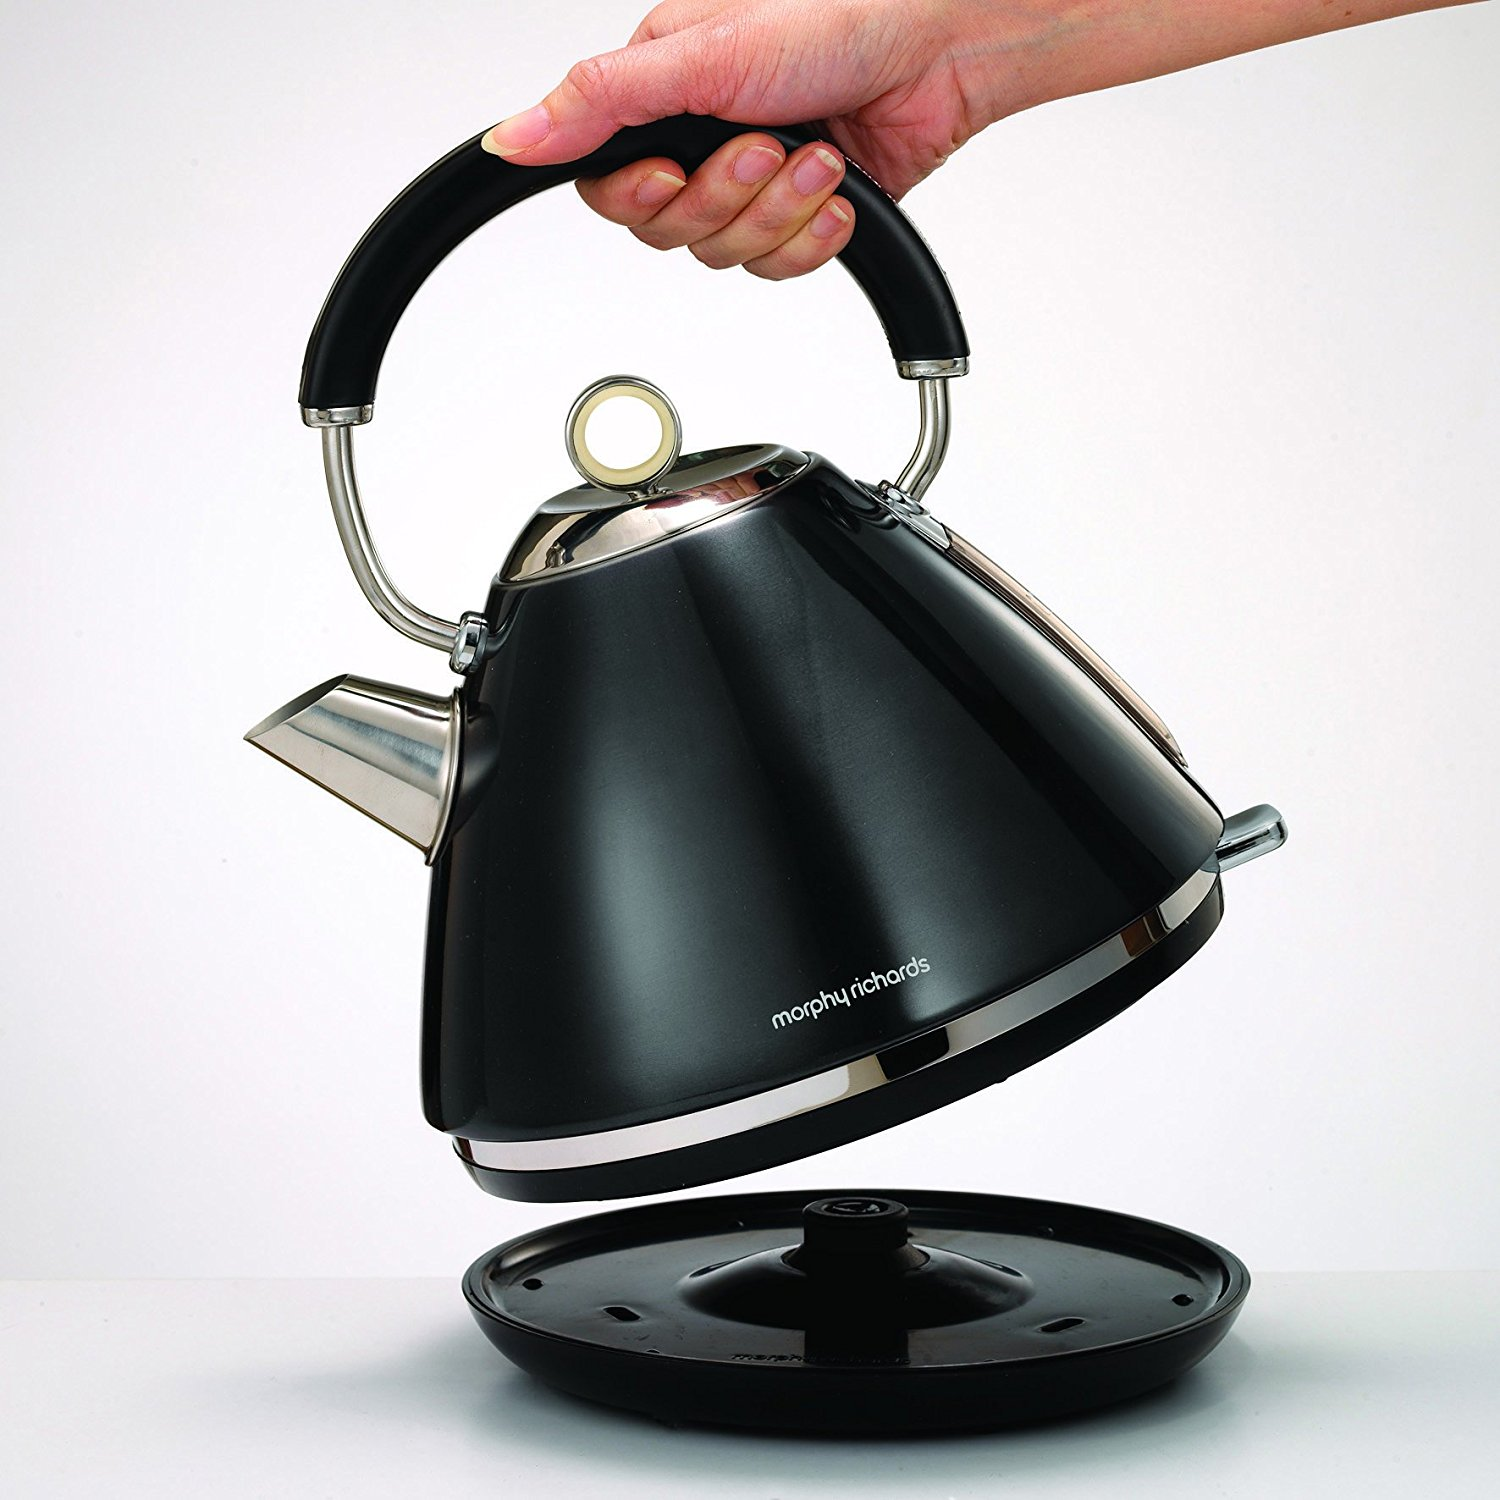 Morphy Richards 102002 Accents Pyramid Kettle 151146